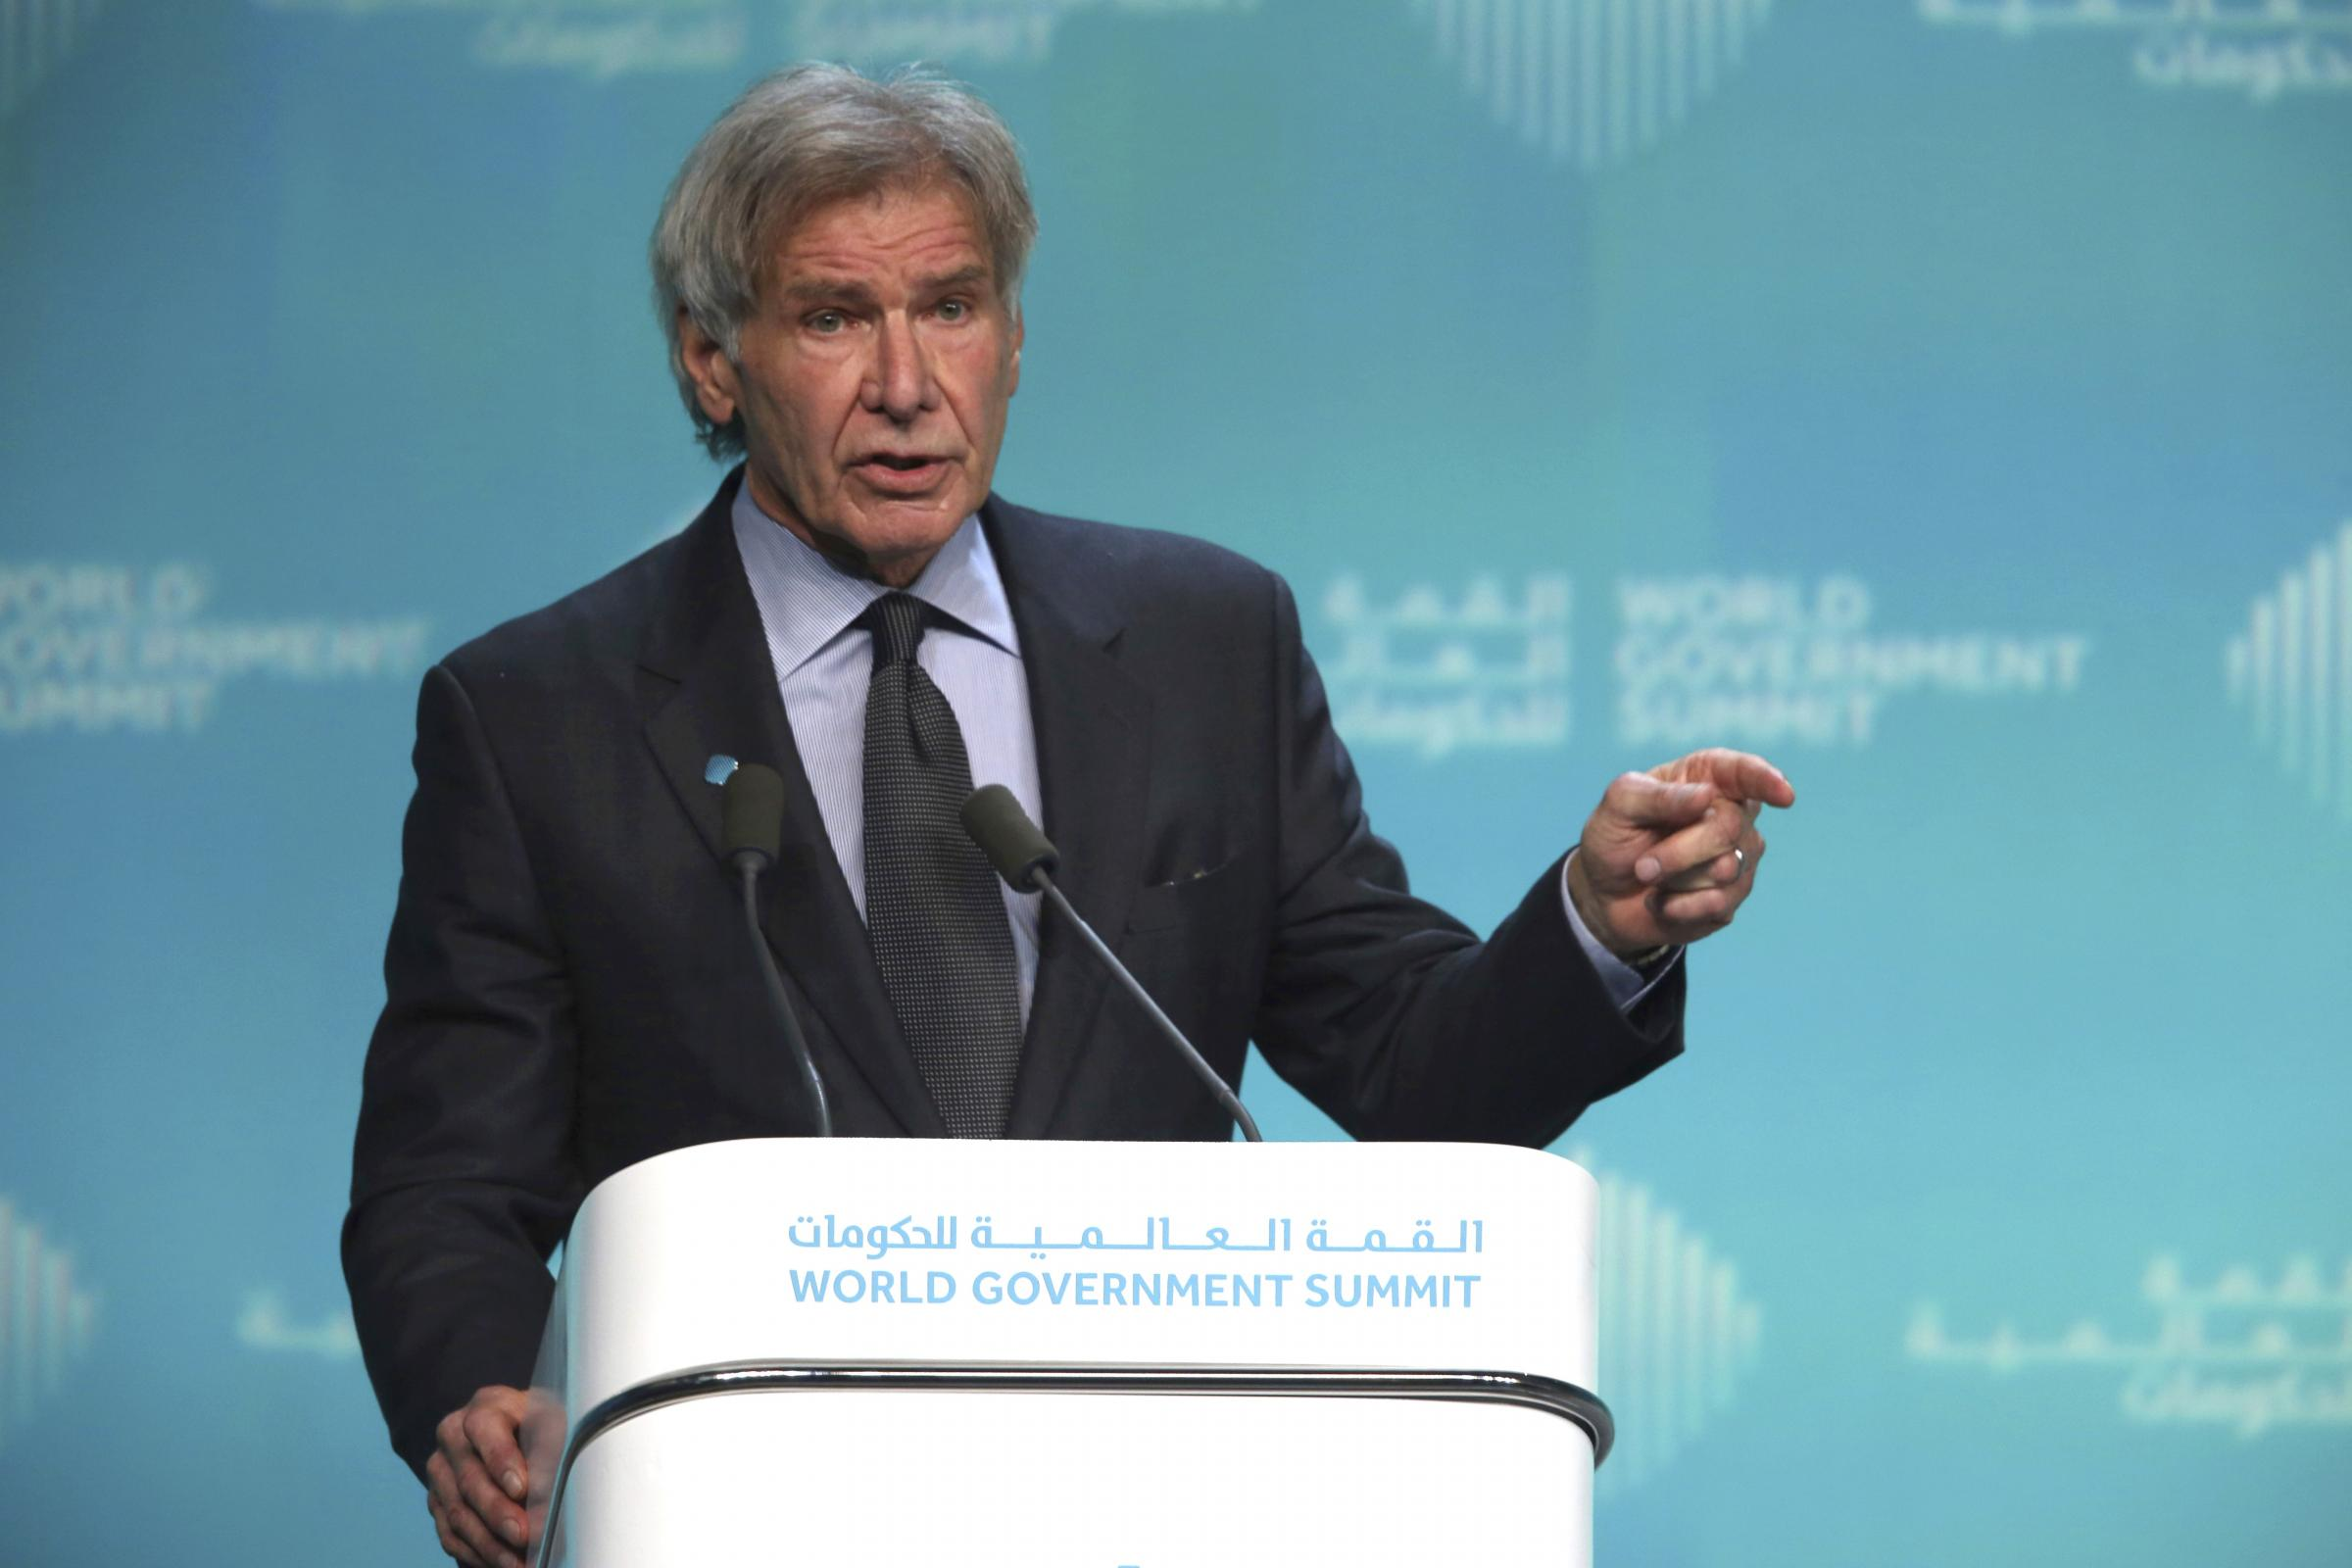 Harrison Ford speaks about ocean conservation at the World Government Summit in Dubai